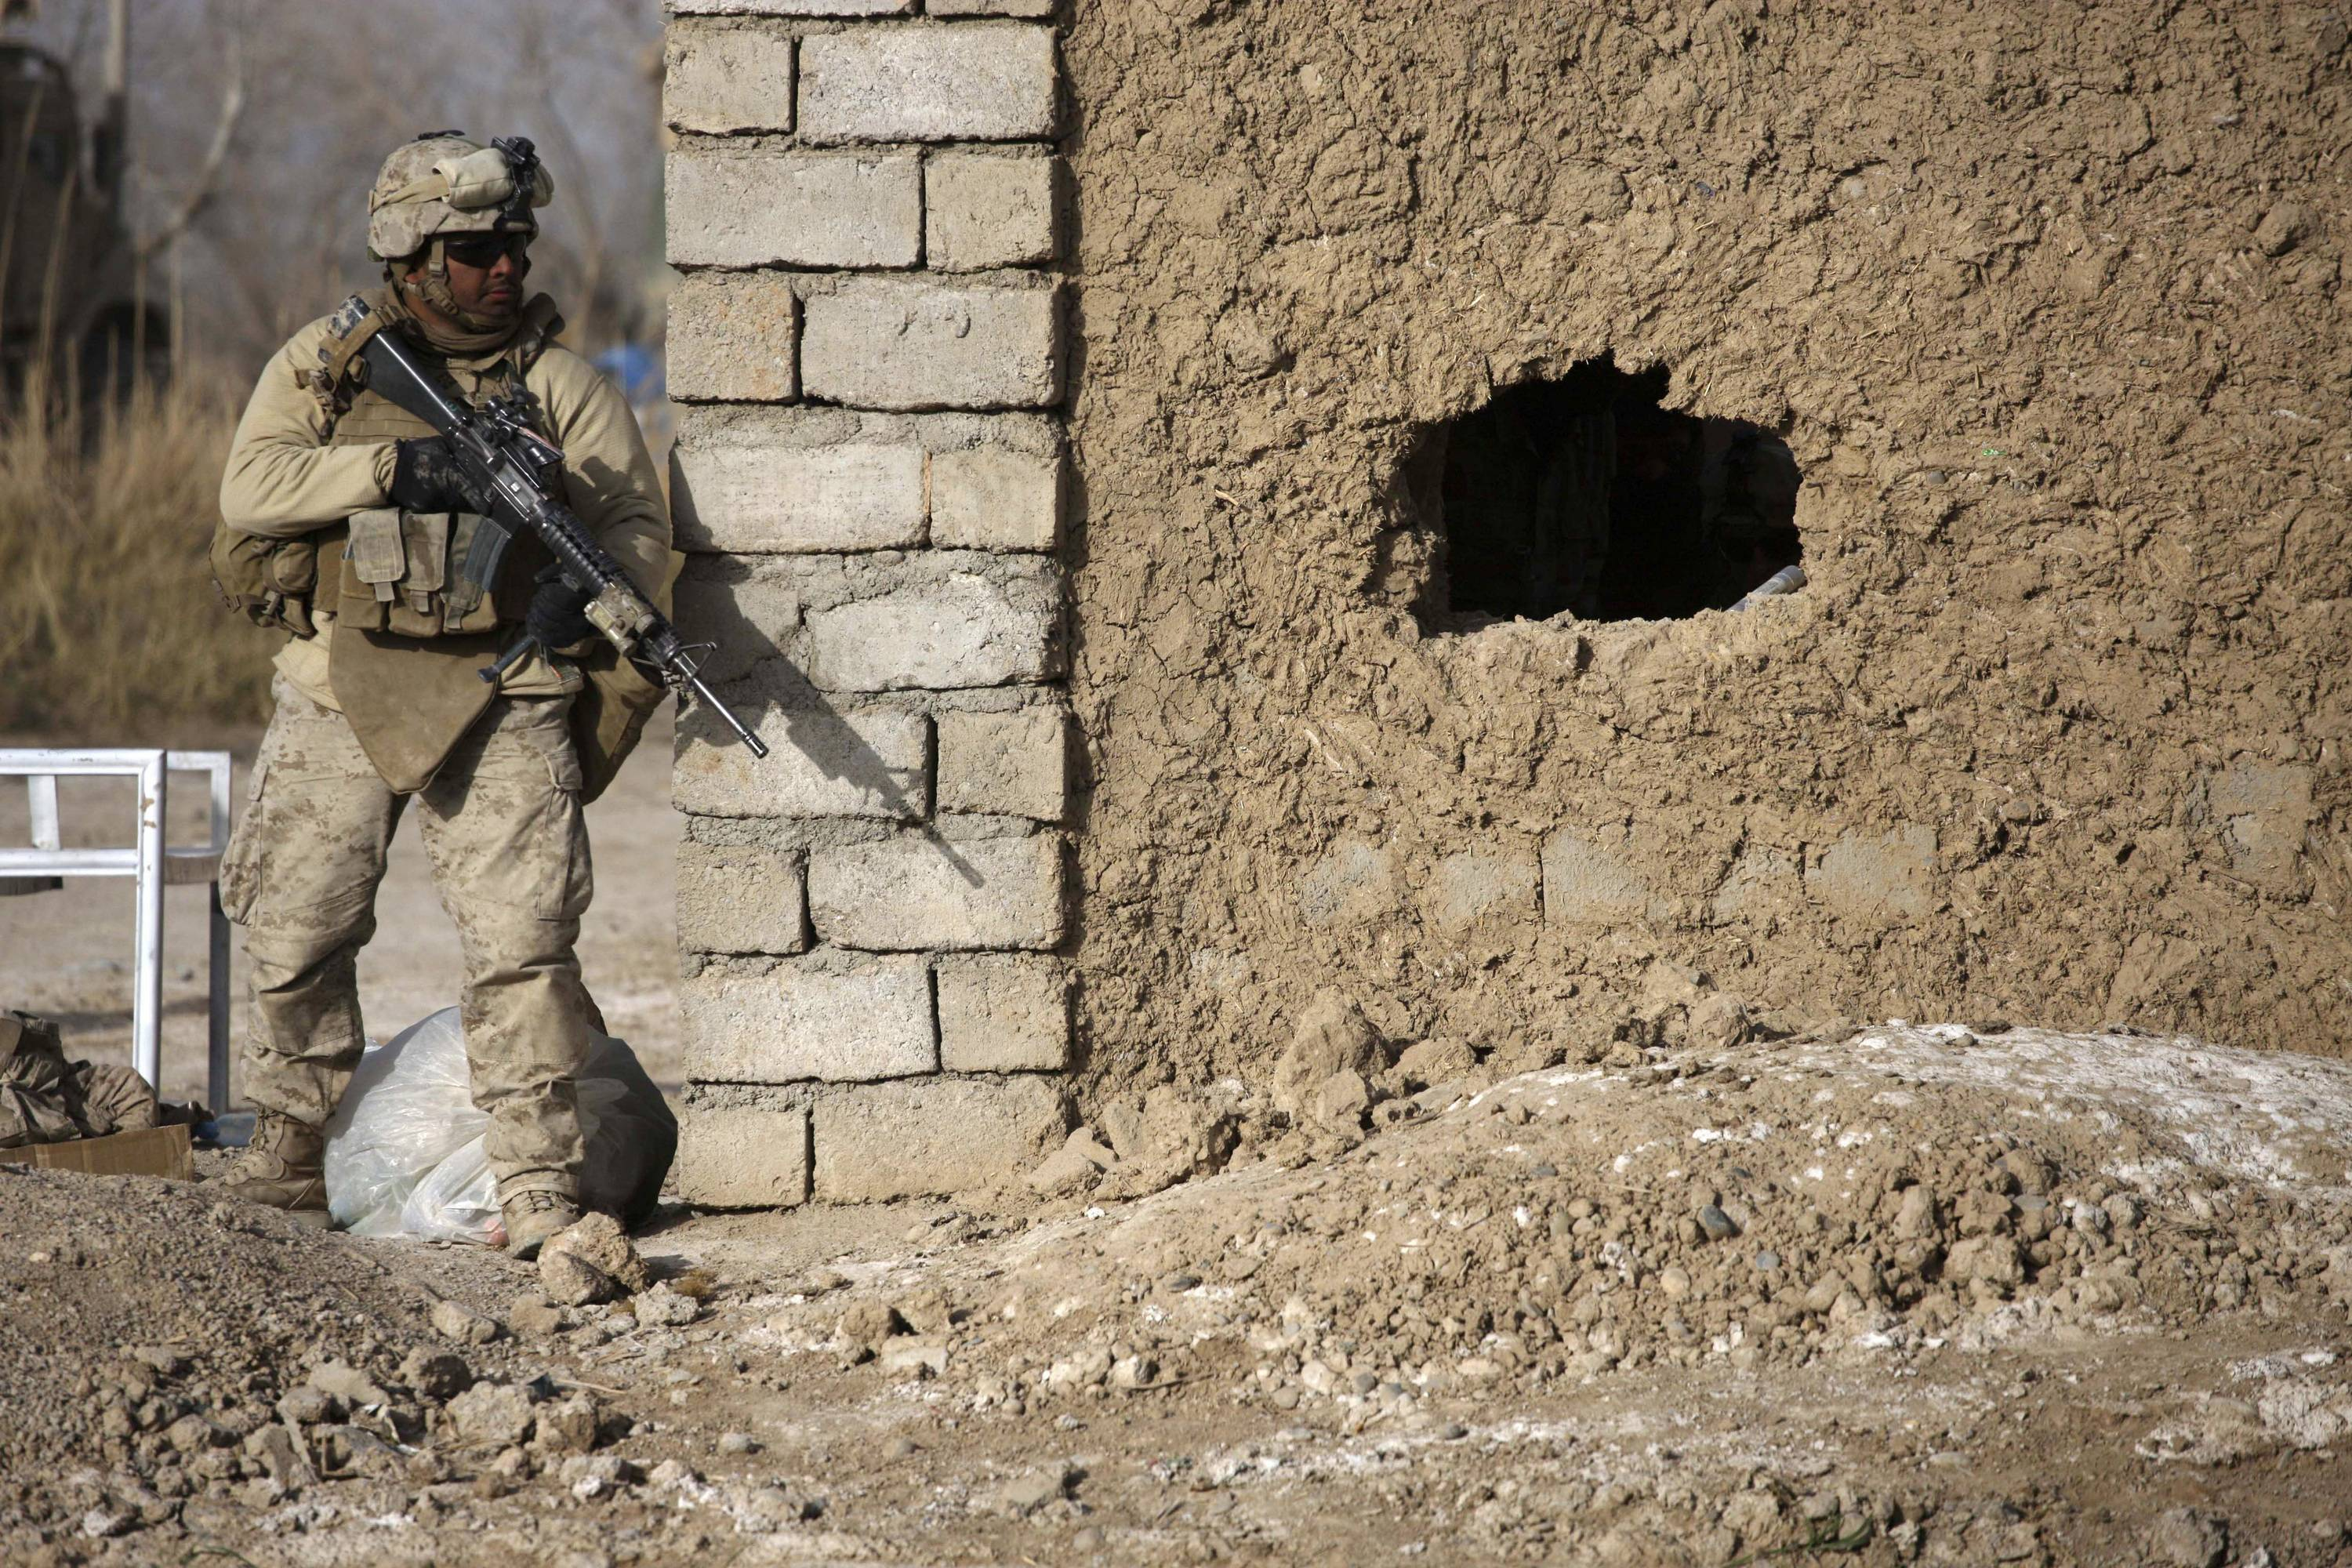 A U.S. Marine helps provide security as a U.S. Army flight medic with Task Force Pegasus evacuates two Marine casualties from the battlefield, in Marjah, Helmand province, southern Afghanistan.